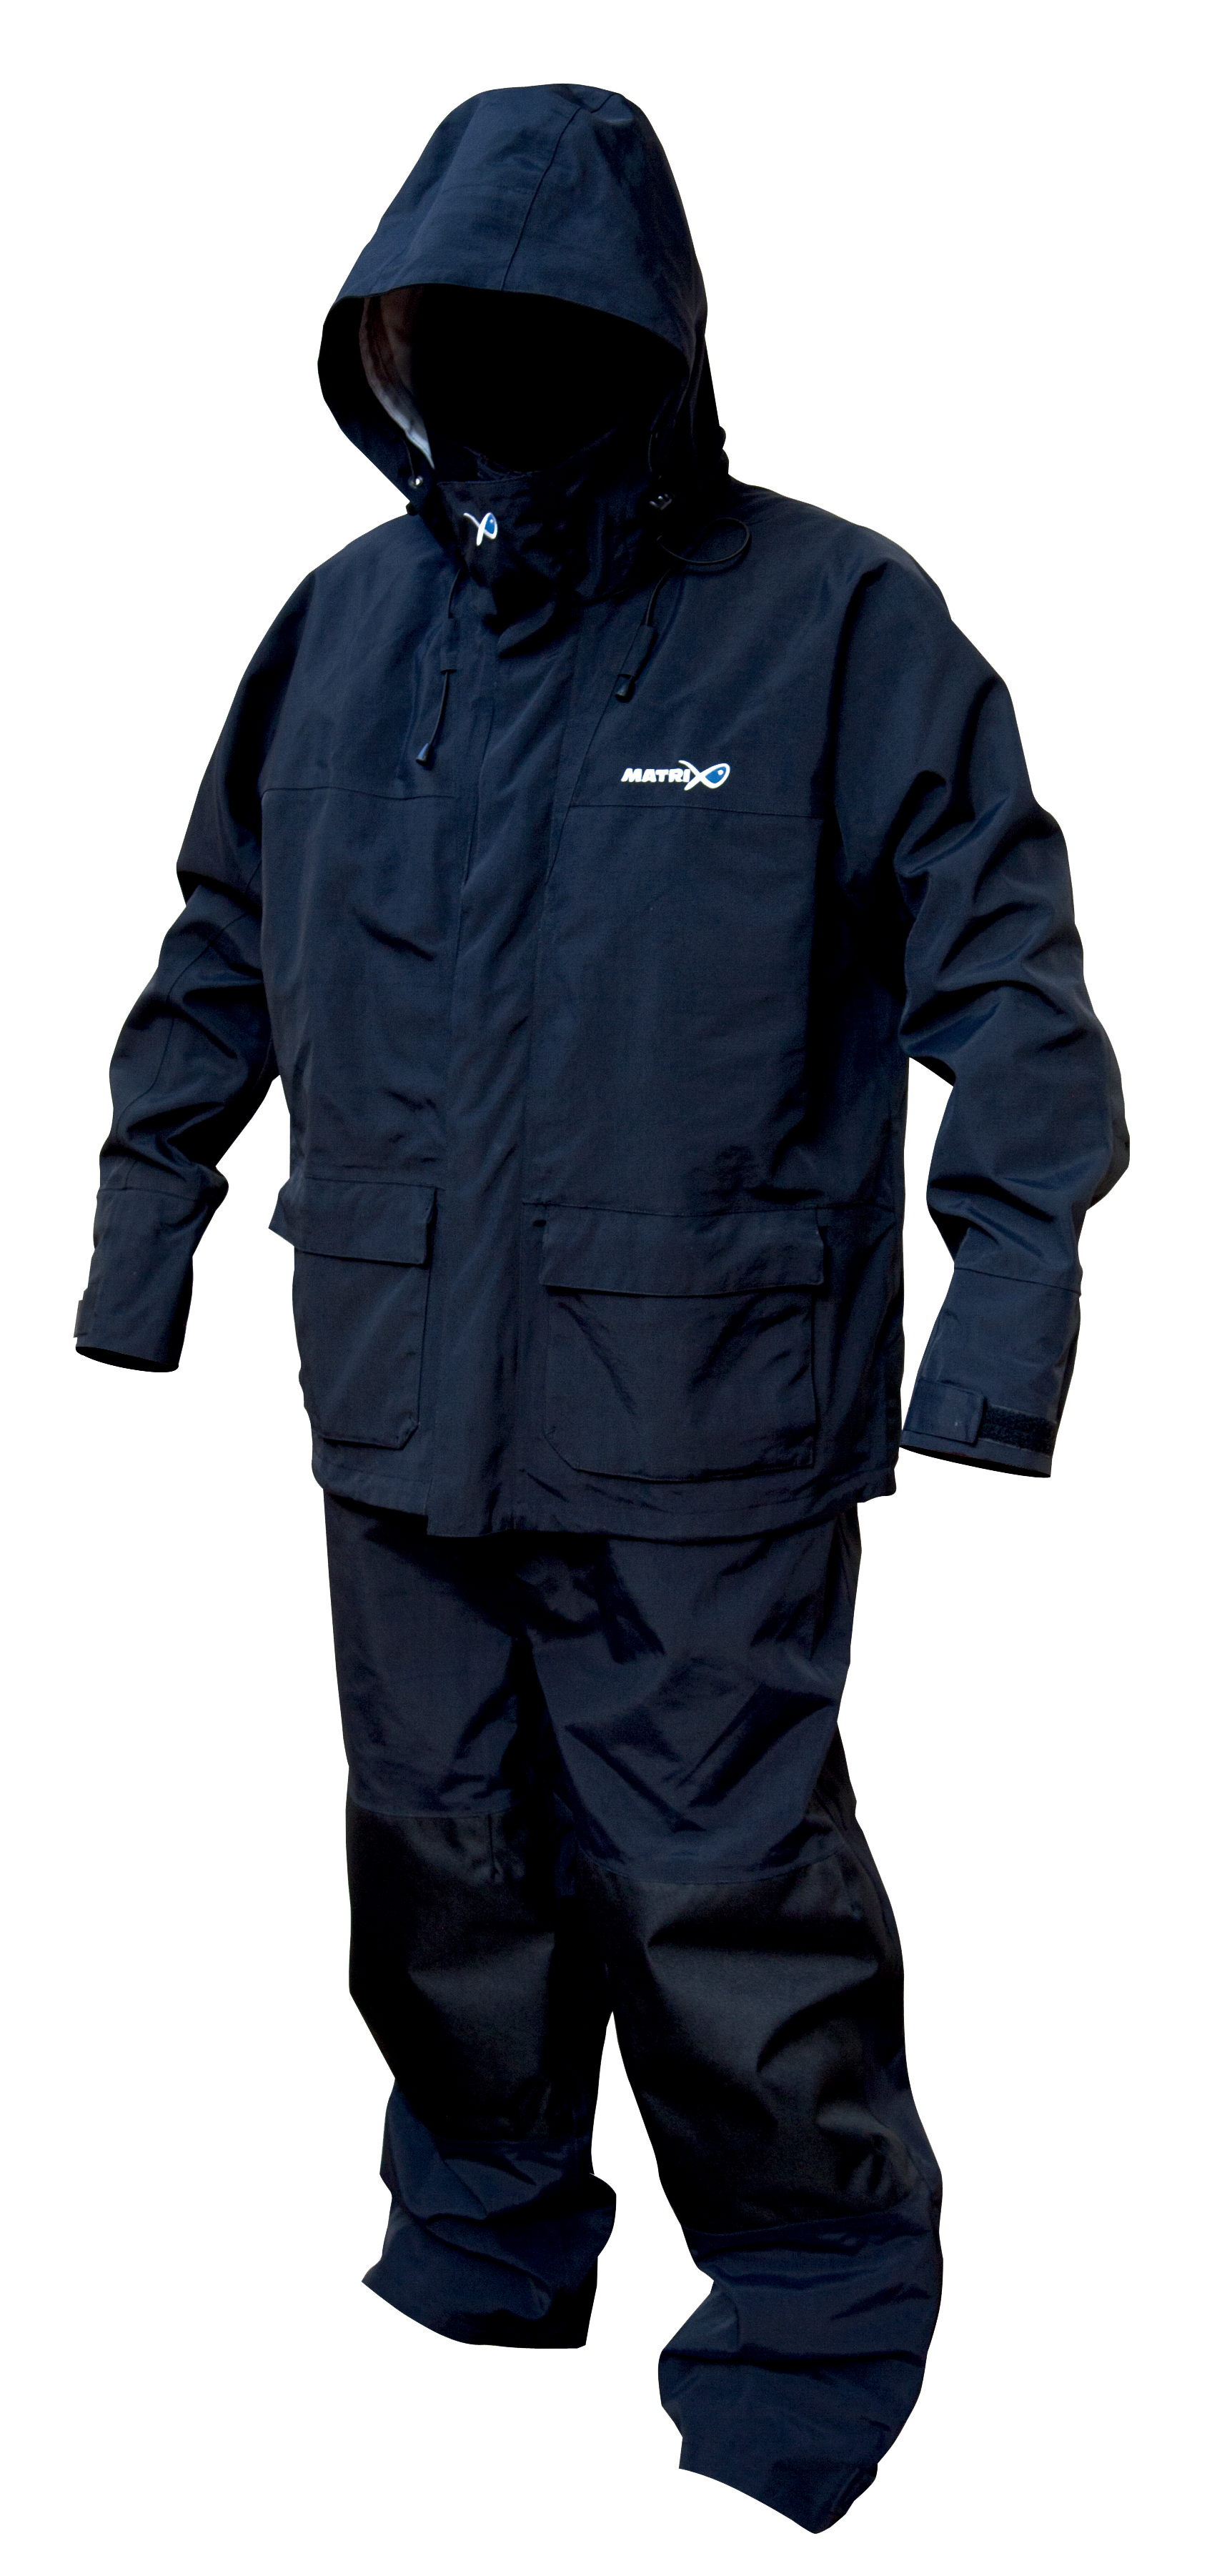 MATRIX ALL WEATHER SUIT